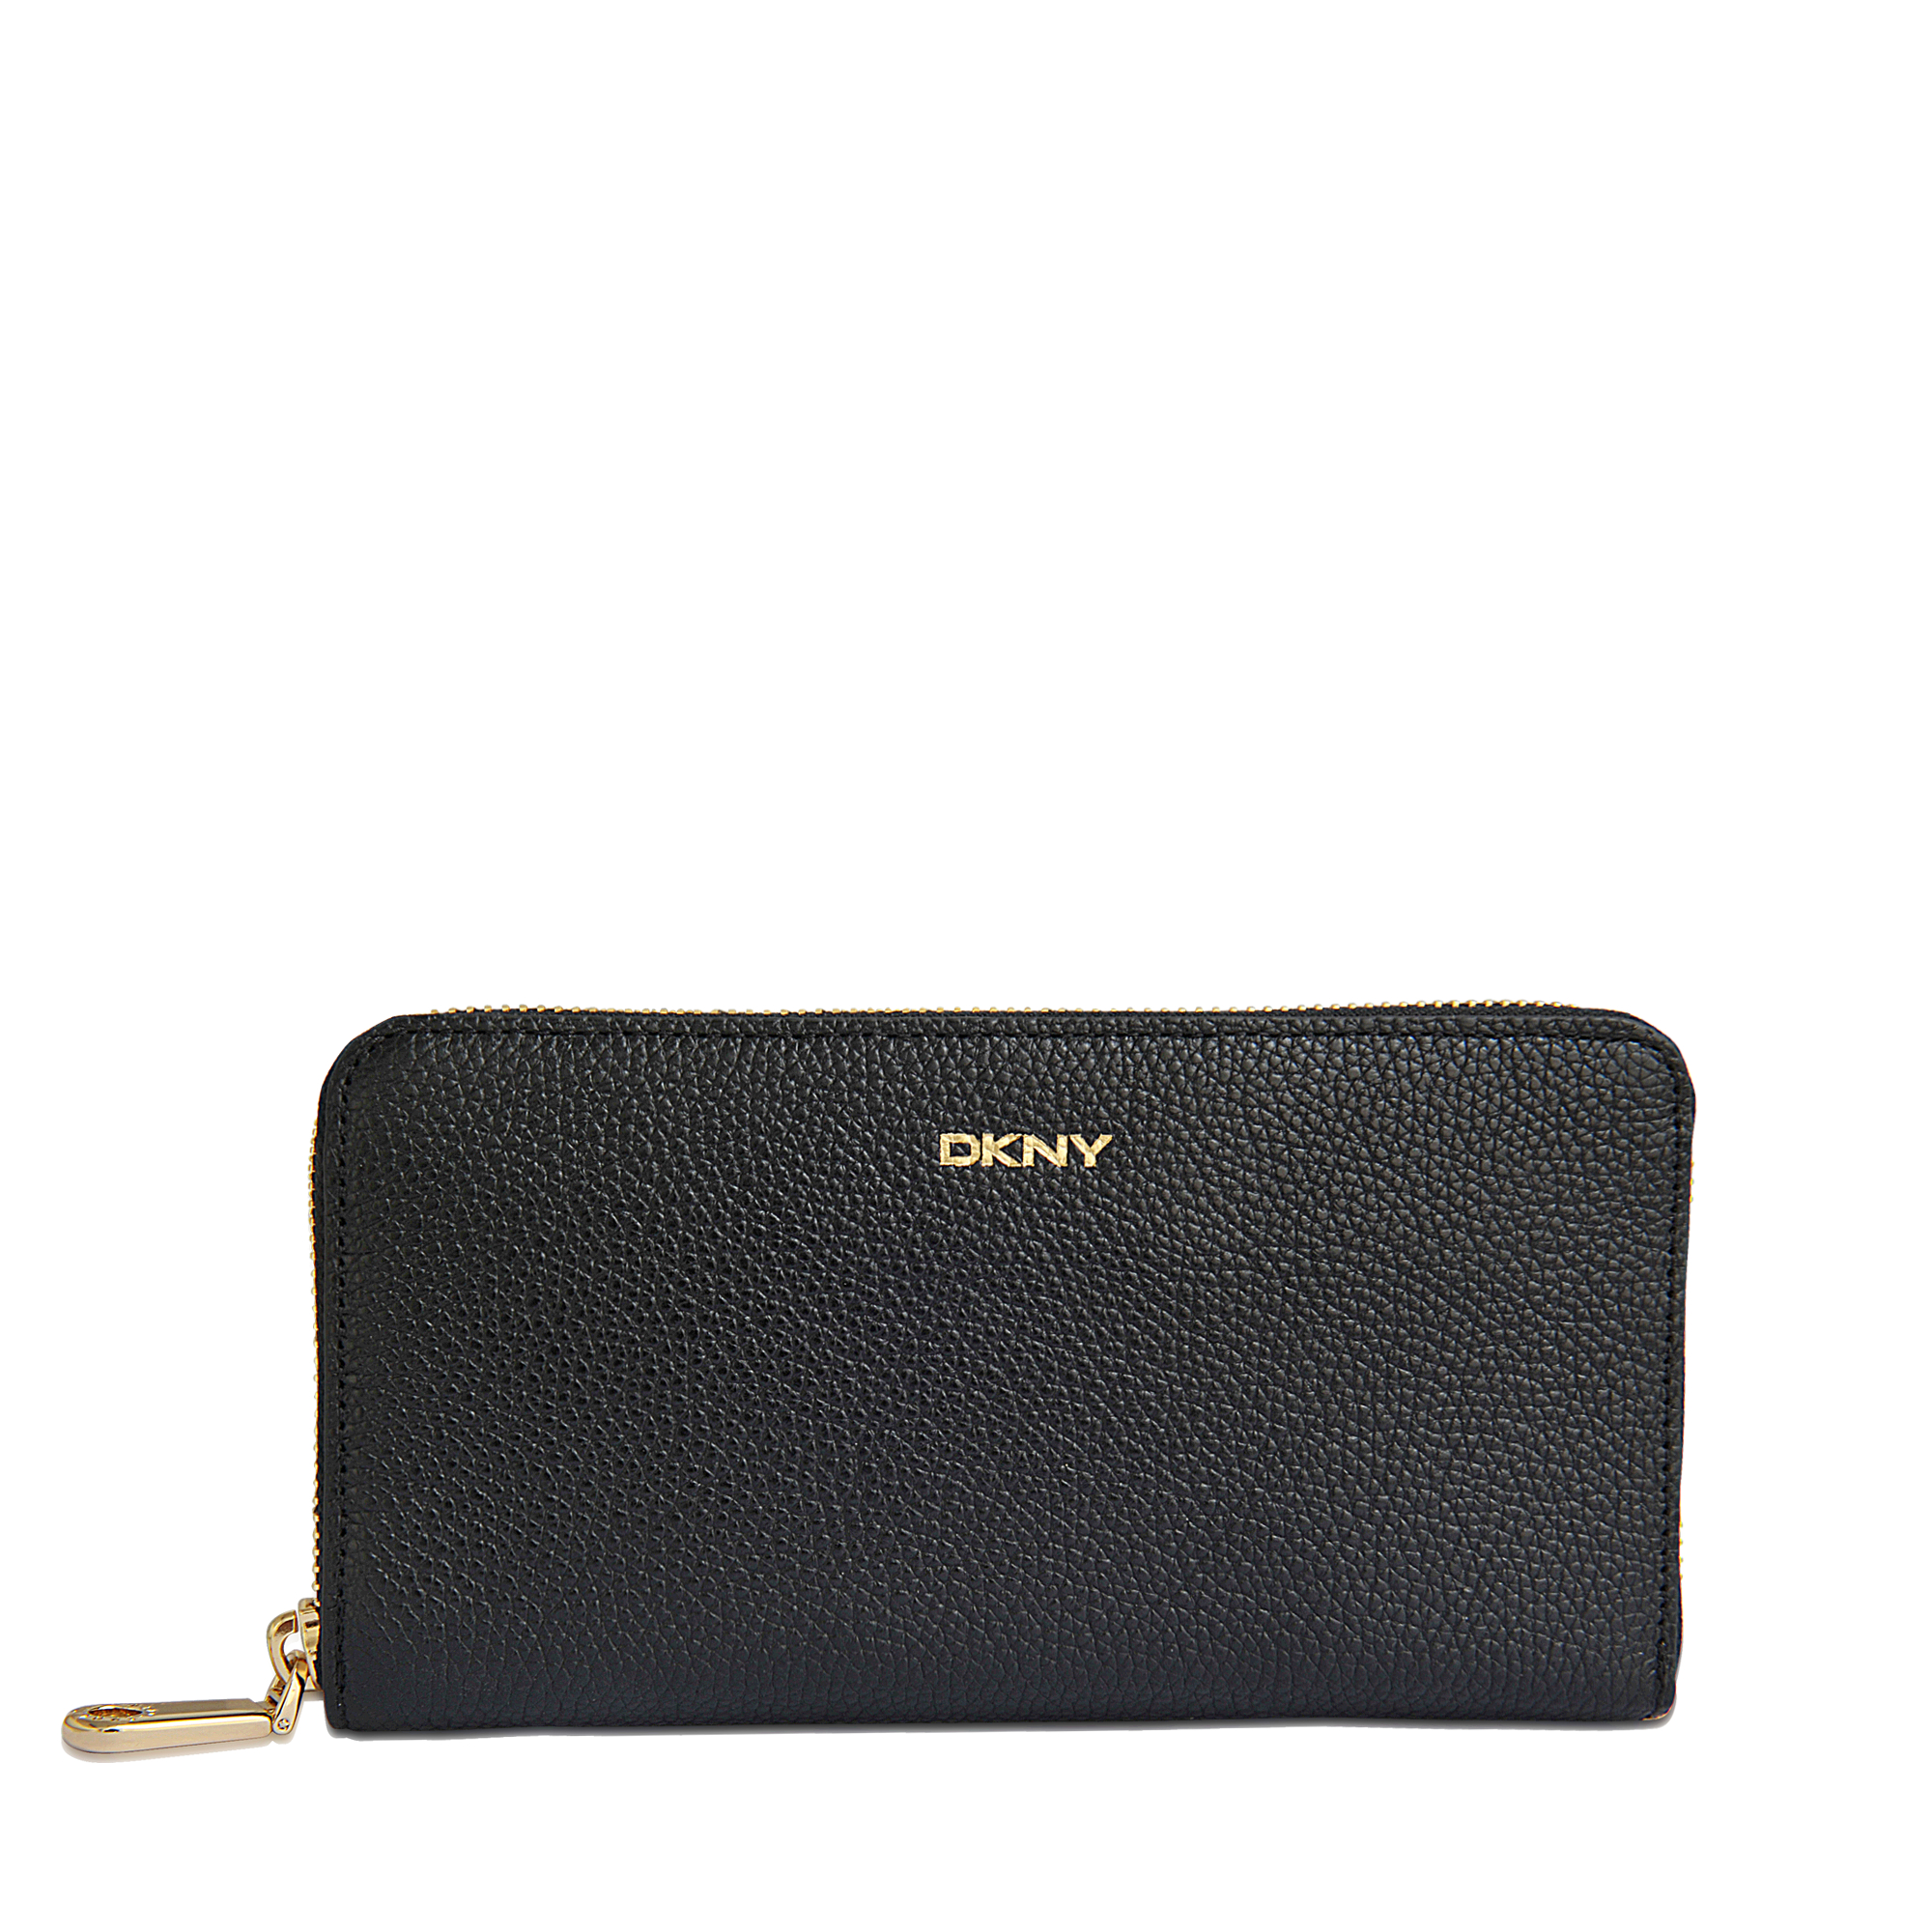 Dkny Taupe Saffiano Leather Wallet in Beige | Lyst |Dkny Wallet